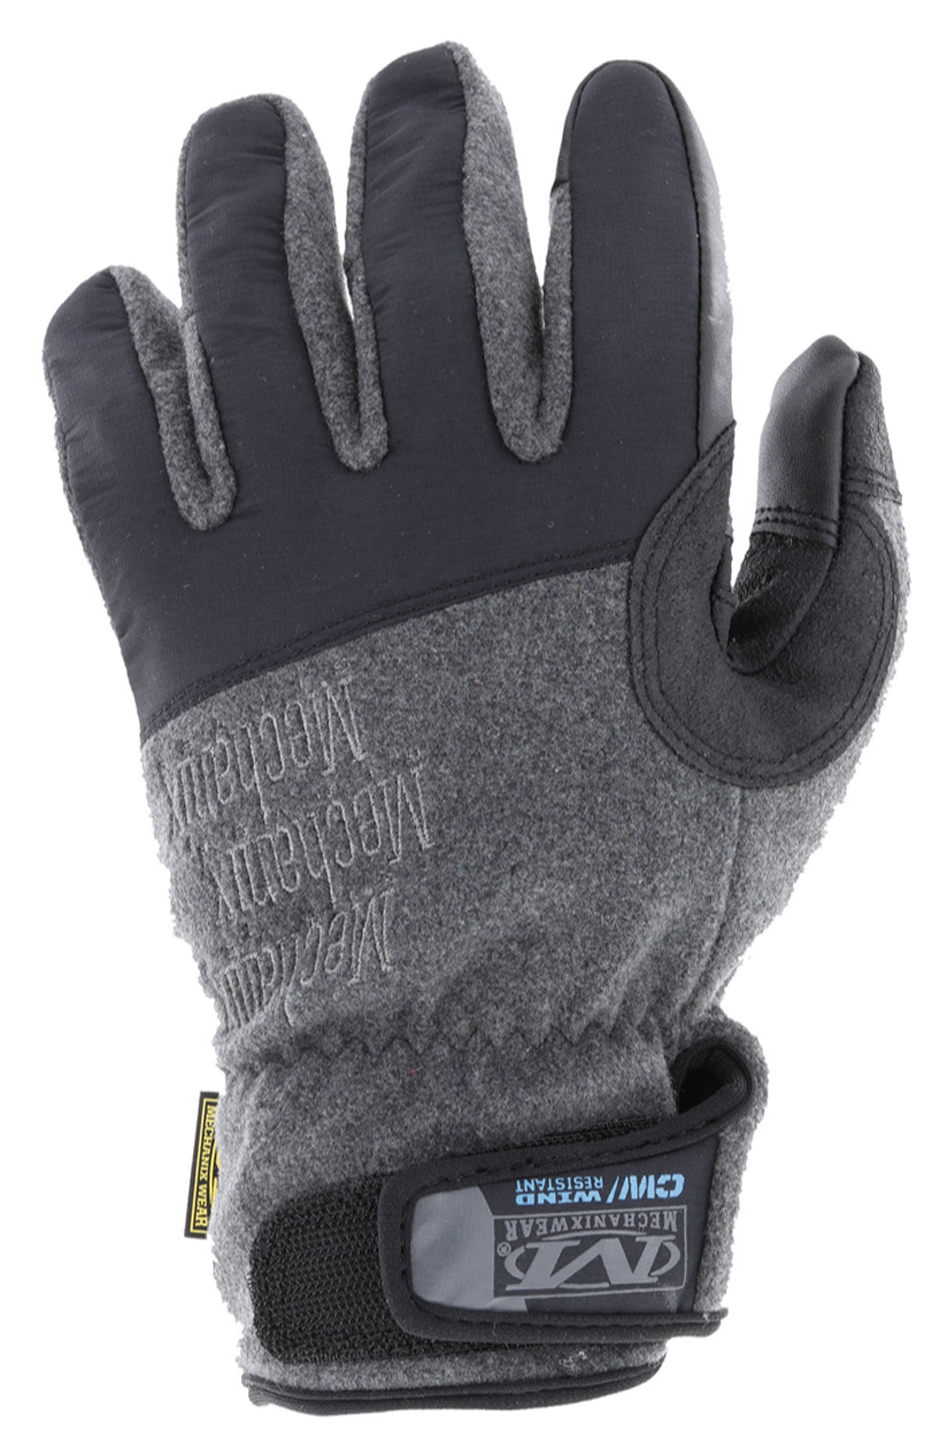 Mechanix Wear MCW-WR-009 Gloves, Shop, Wind Resistant, Reinforced Palm, Hook and Loop Closure, Insulated, Touch Screen Compatible, Black / Gray, Medium, Pair